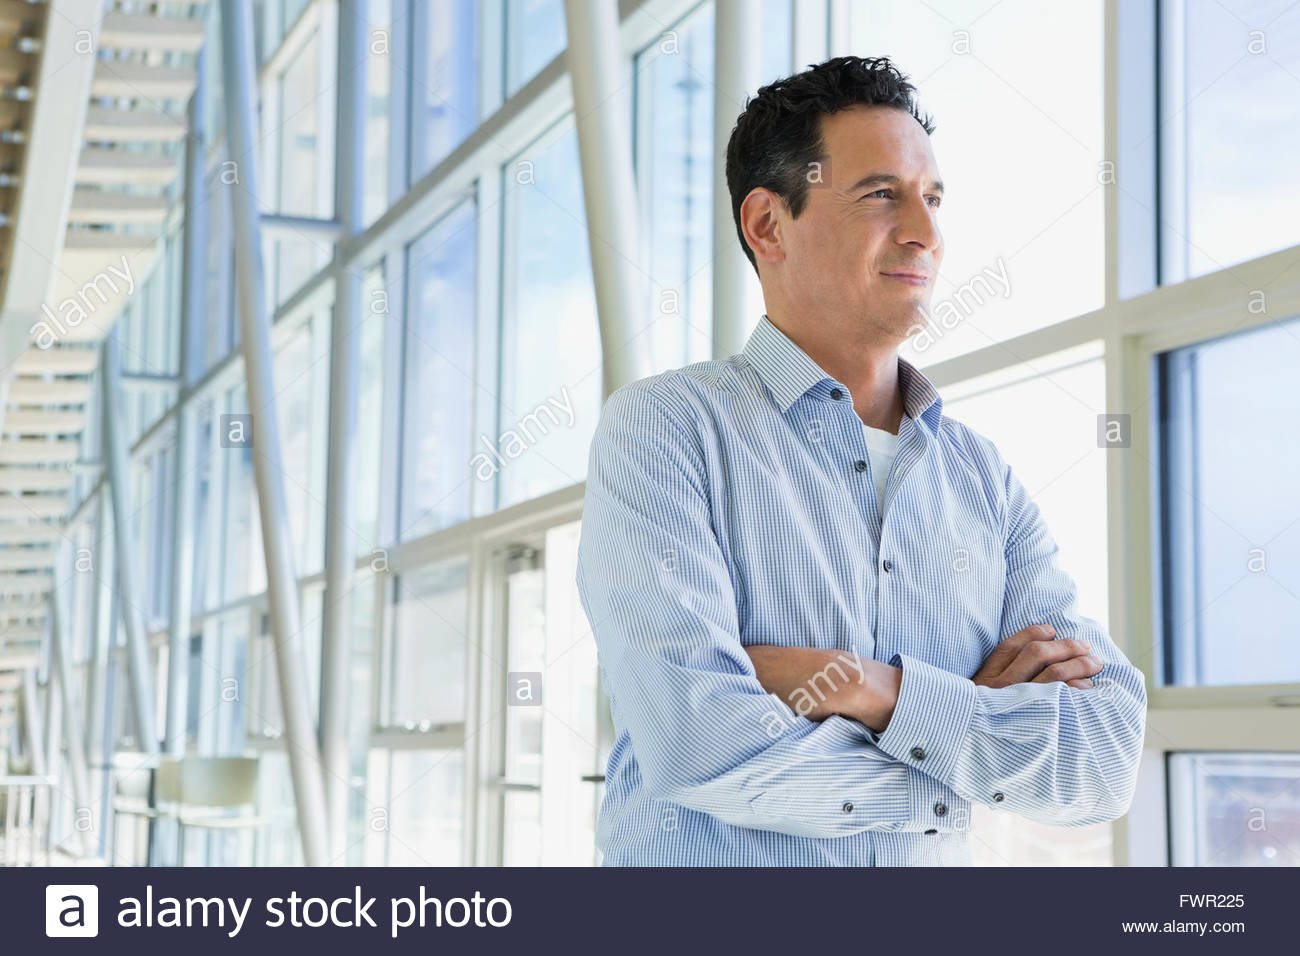 Businessman with arms crossed looking out window - Stock Image